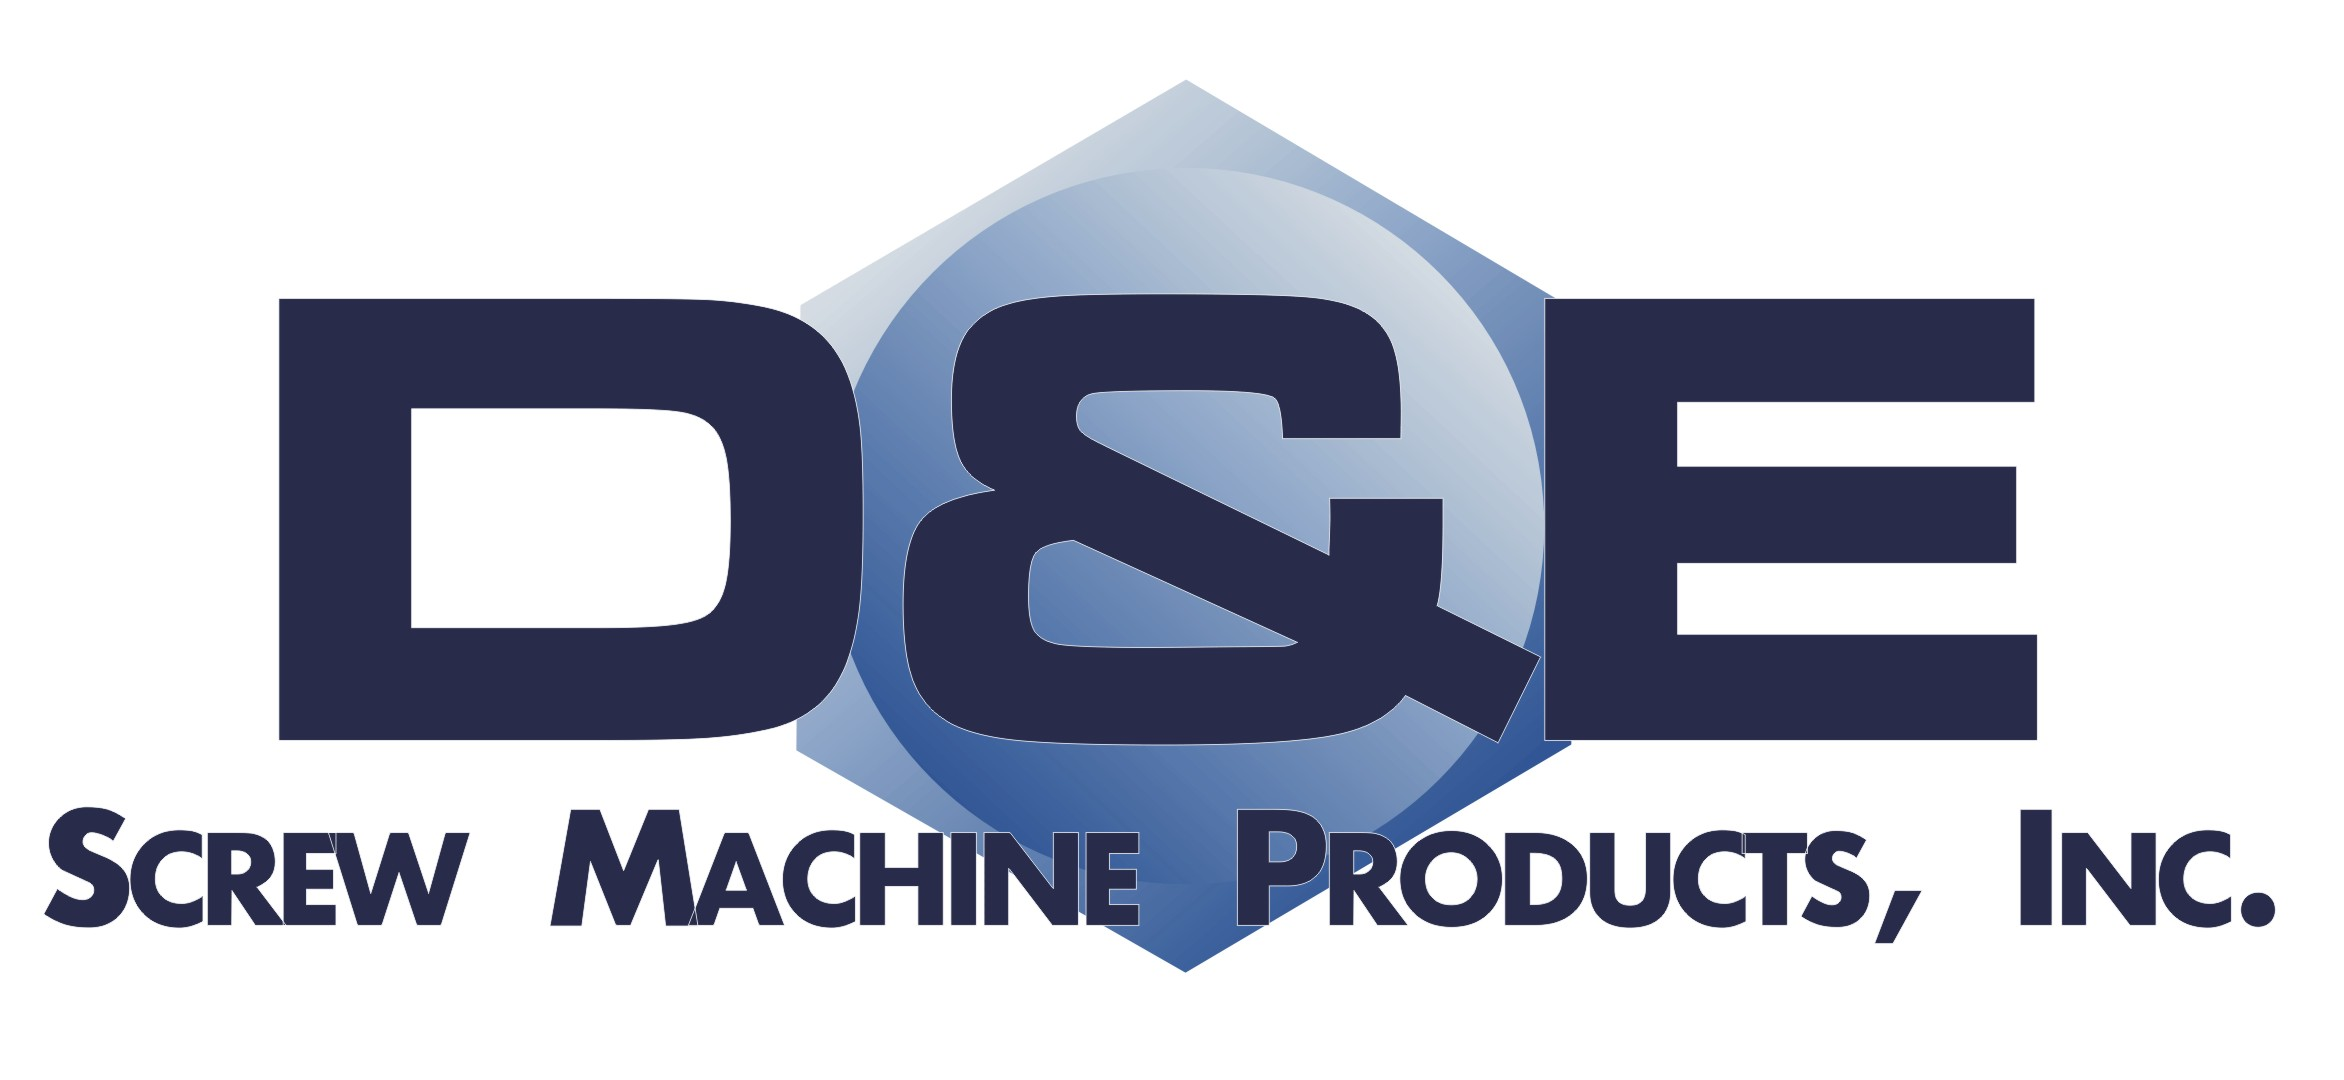 D&E Screw Machine Products, Inc.